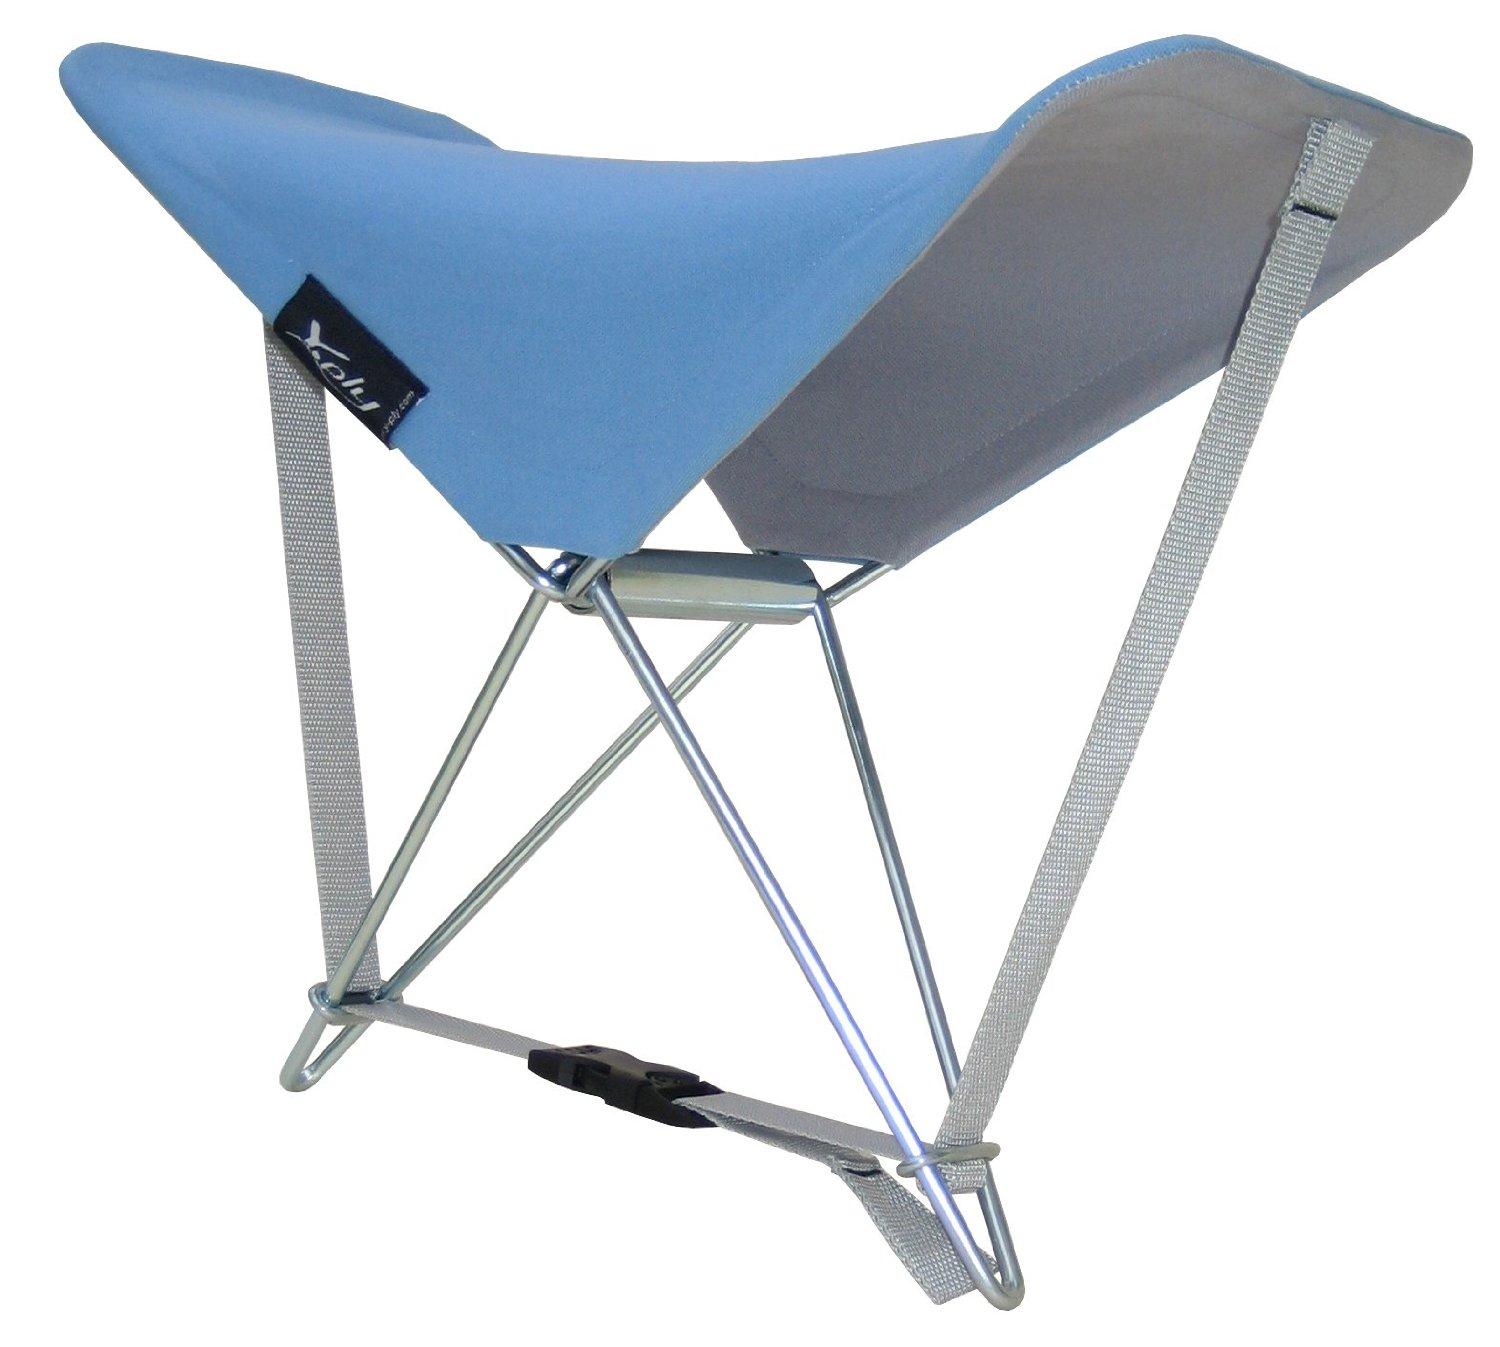 Multifunctional portable outdoor beach chair - Lay on the beach in comfort use this as a back rest, head rest, neck rest, pillow, foot rest, foldable camp chair